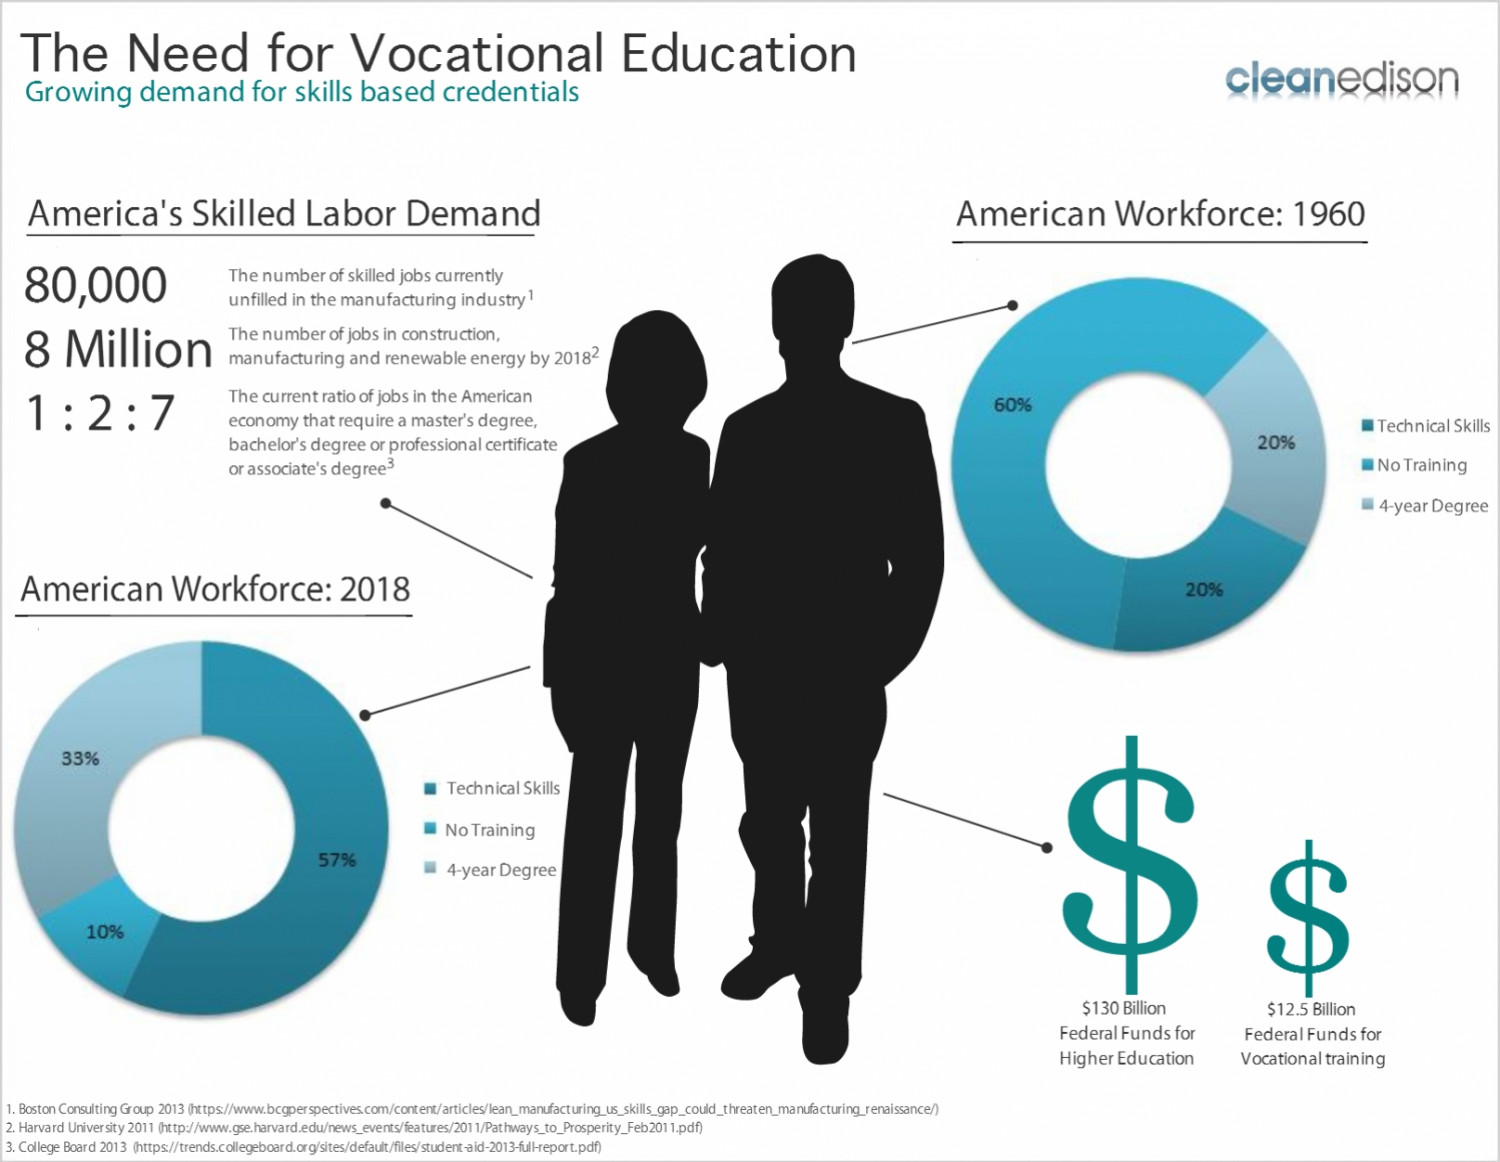 The Need for Vocational Education Infographic